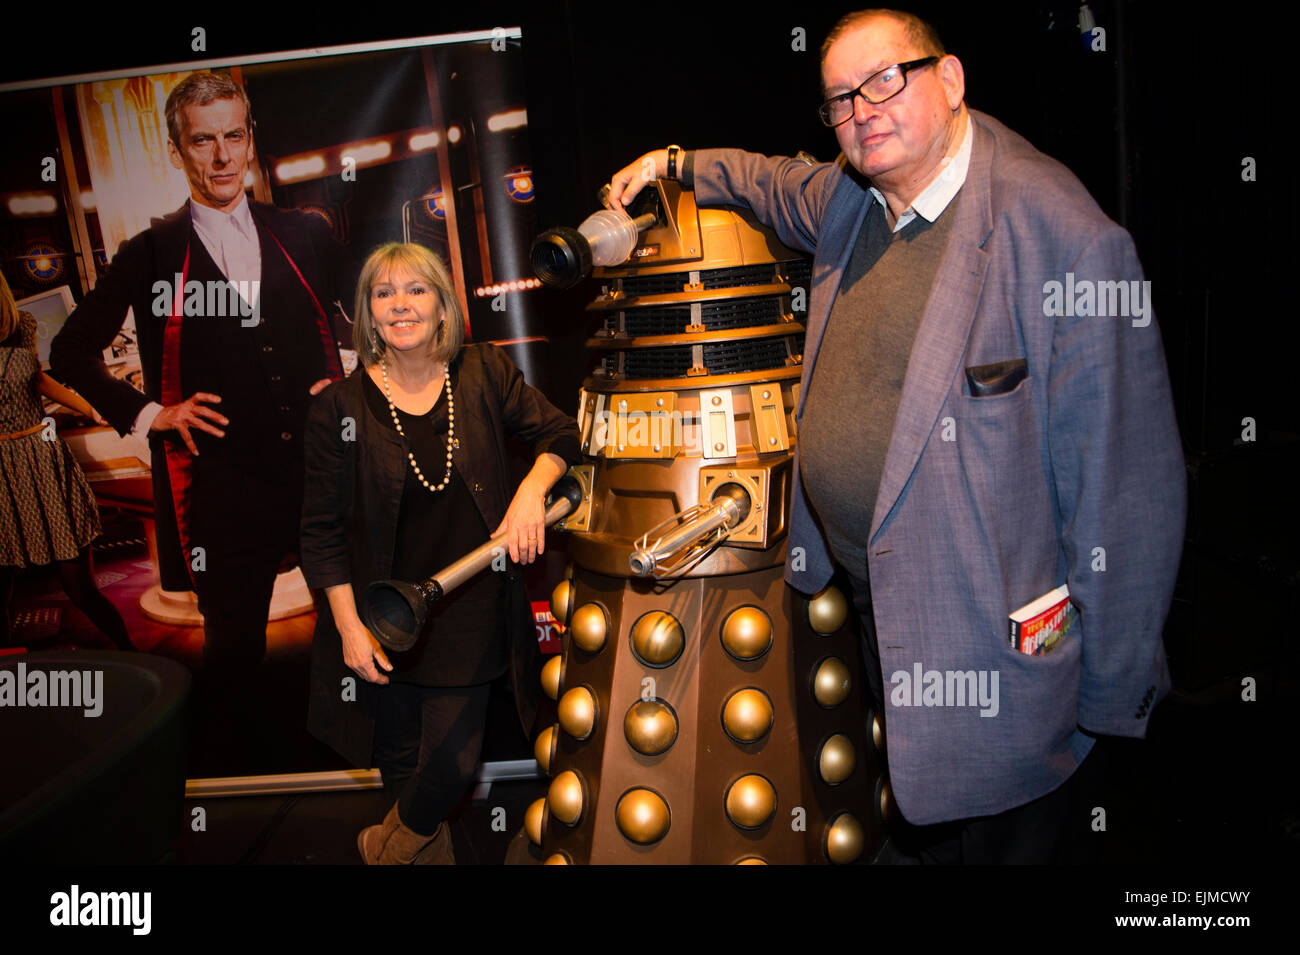 Dr Who Convention: Terrance Dicks, Writer and Script editor on Doctor Who and Wendy Padbury, who played the Doctor's - Stock Image